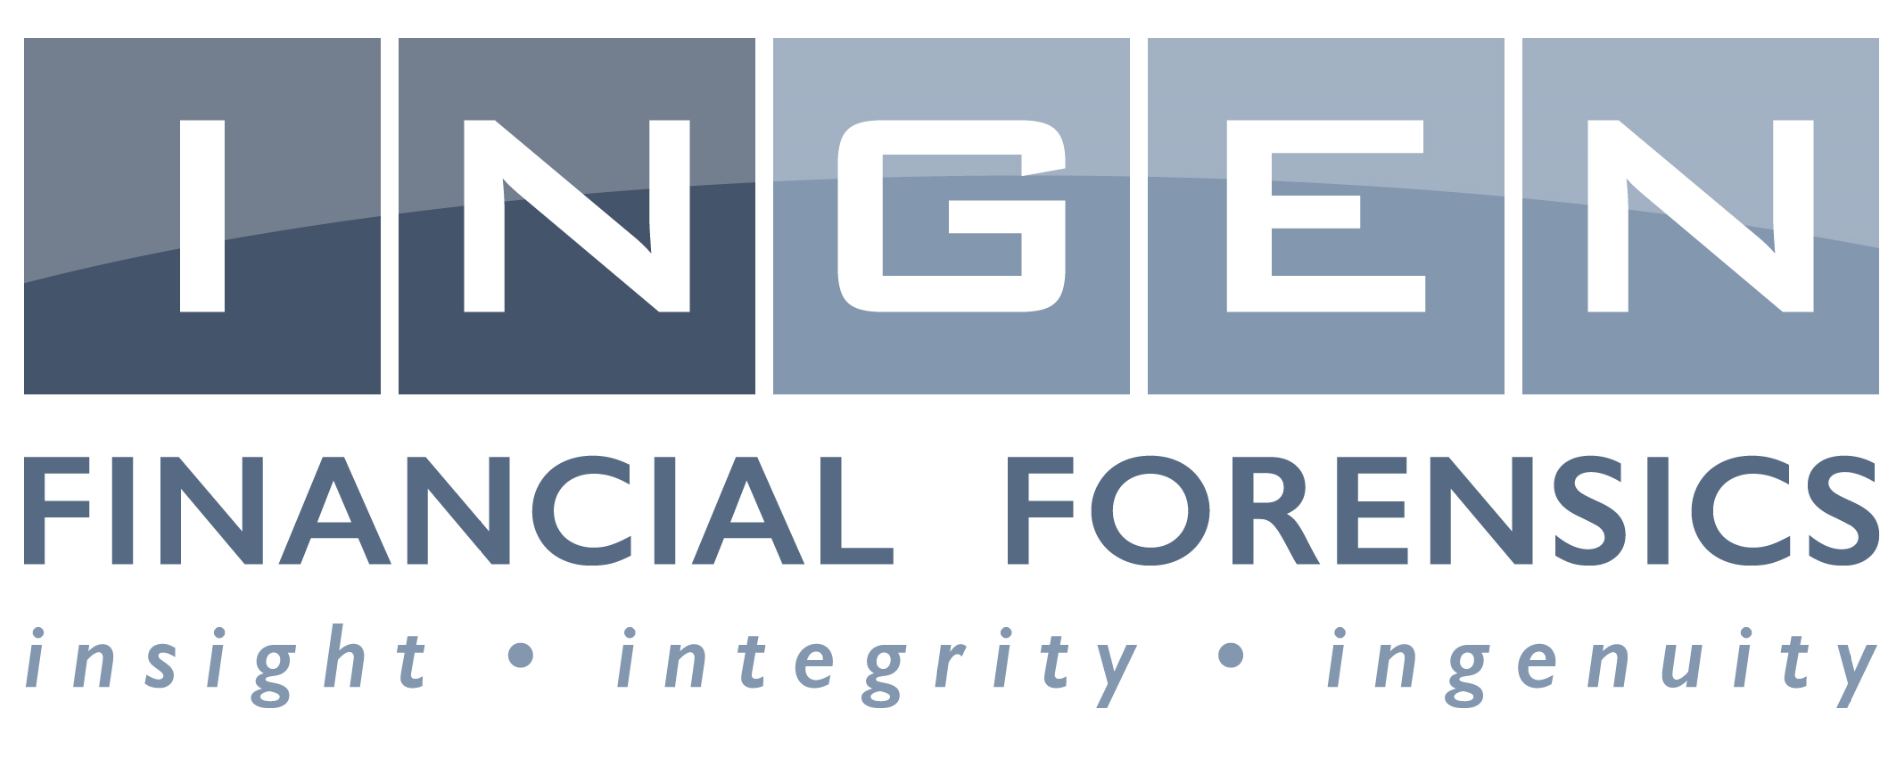 Ingen Financial Forensics logo